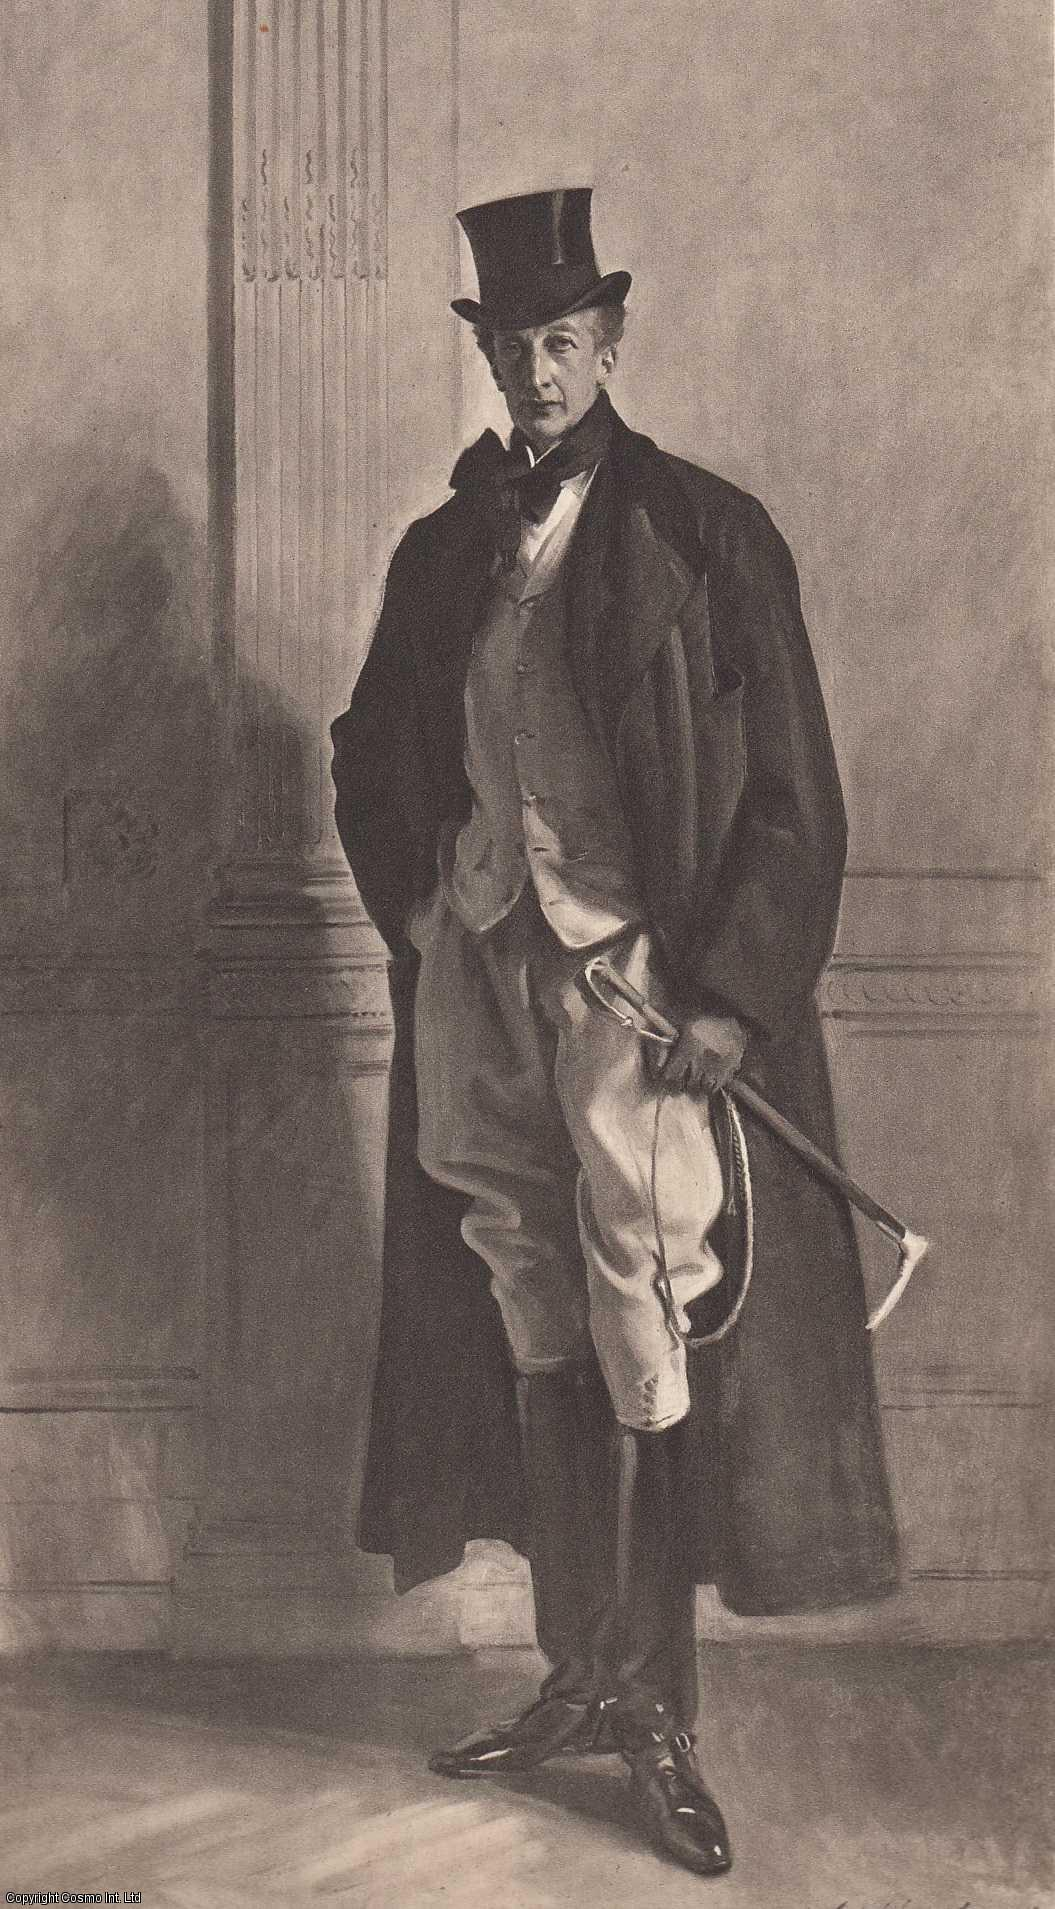 ENGRAVING - The Right Hon. Lord Ribblesdale, Painted by John S. Sargent. (ENGRAVING ONLY).